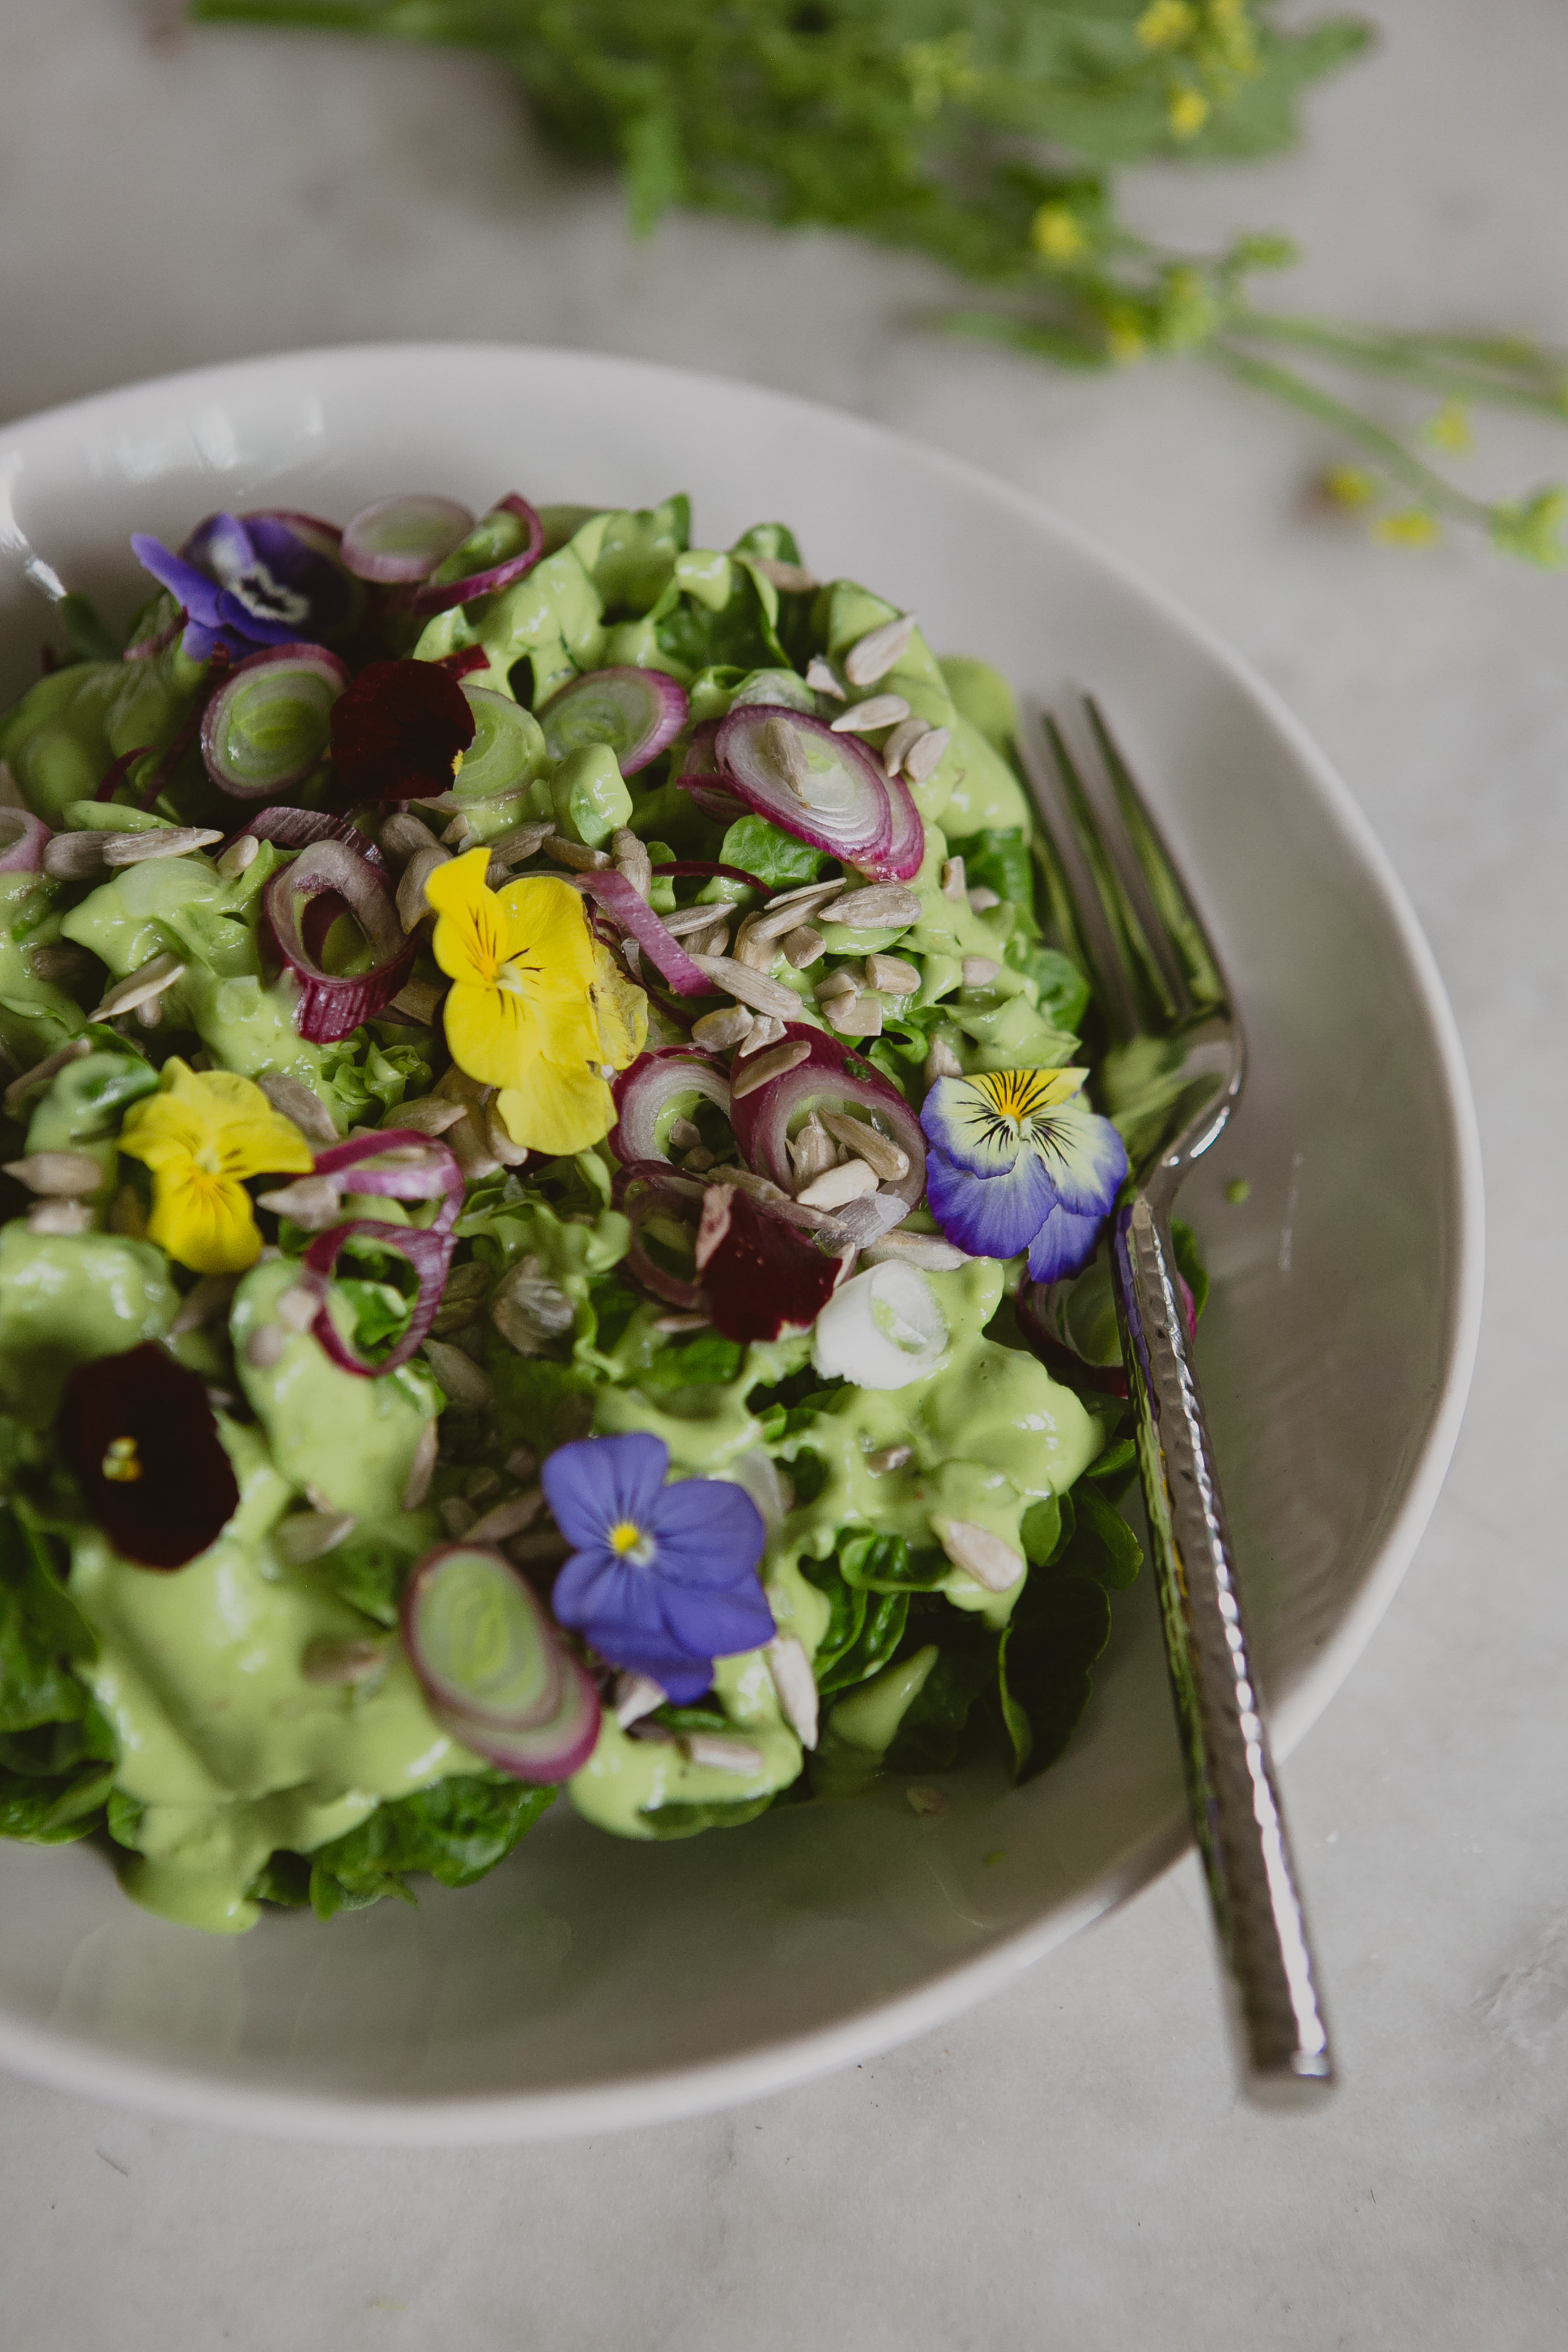 Seamus Mullen's beautiful little gem salad with Green Goddess Dressing, shallot and sprouted sunflower seeds.